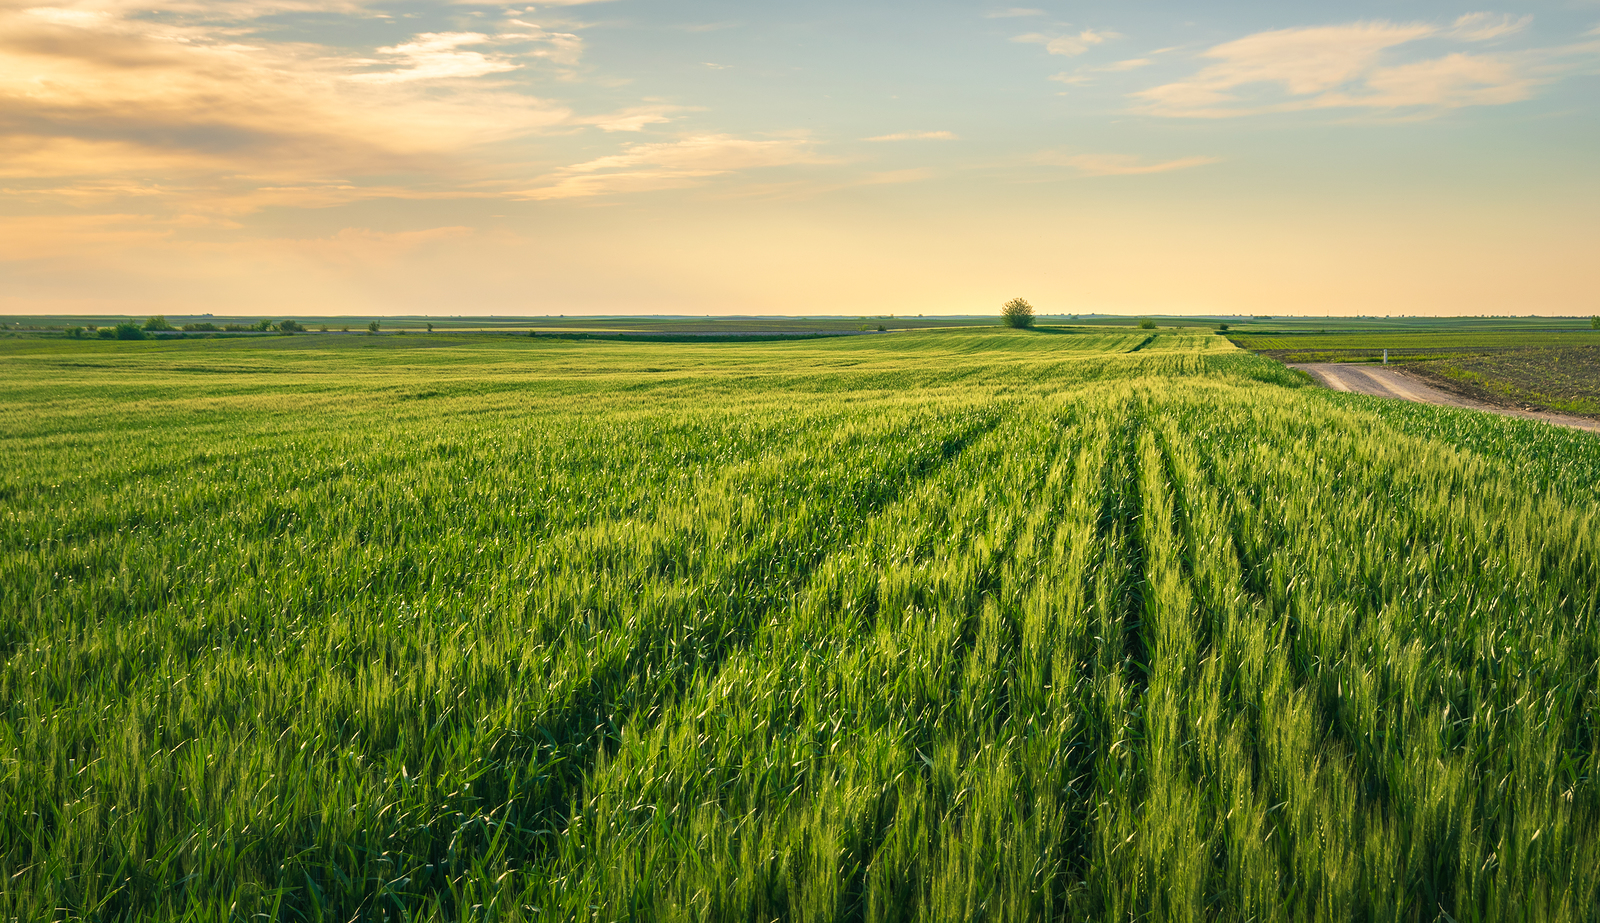 Wheat Field In Countryside. Sunset In Countryside Fields. Green